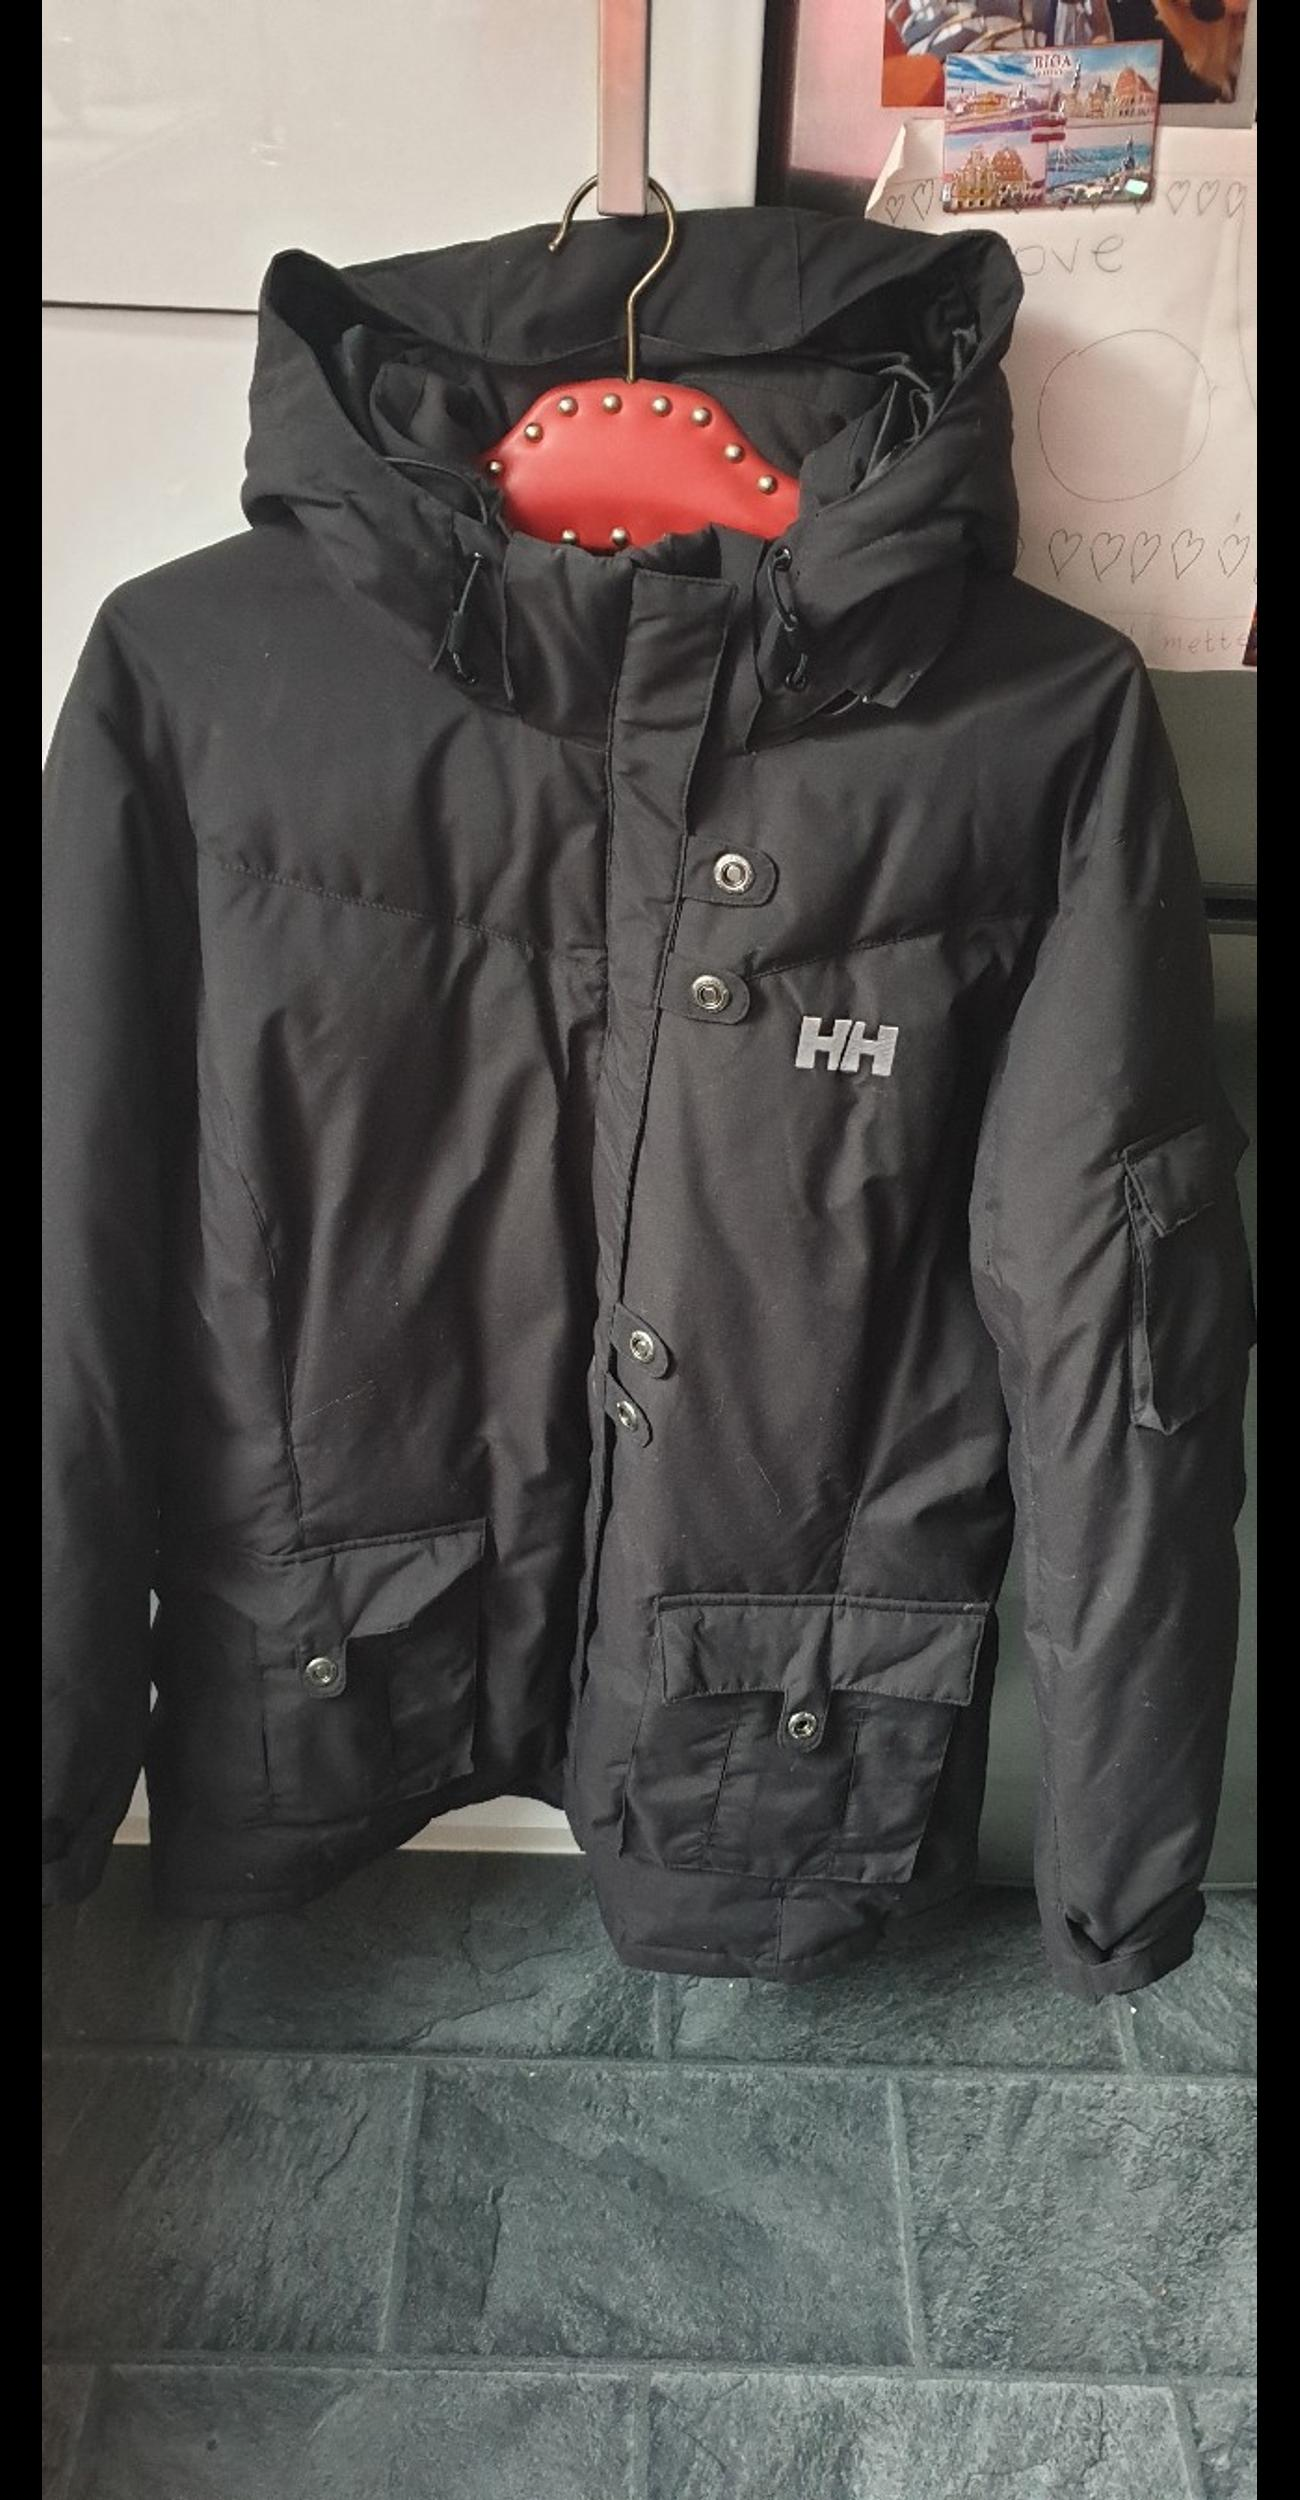 a7fed5e8 Parkas Helly Hansen dame str XL in 0654 Oslo for NOK 220.00 for sale ...